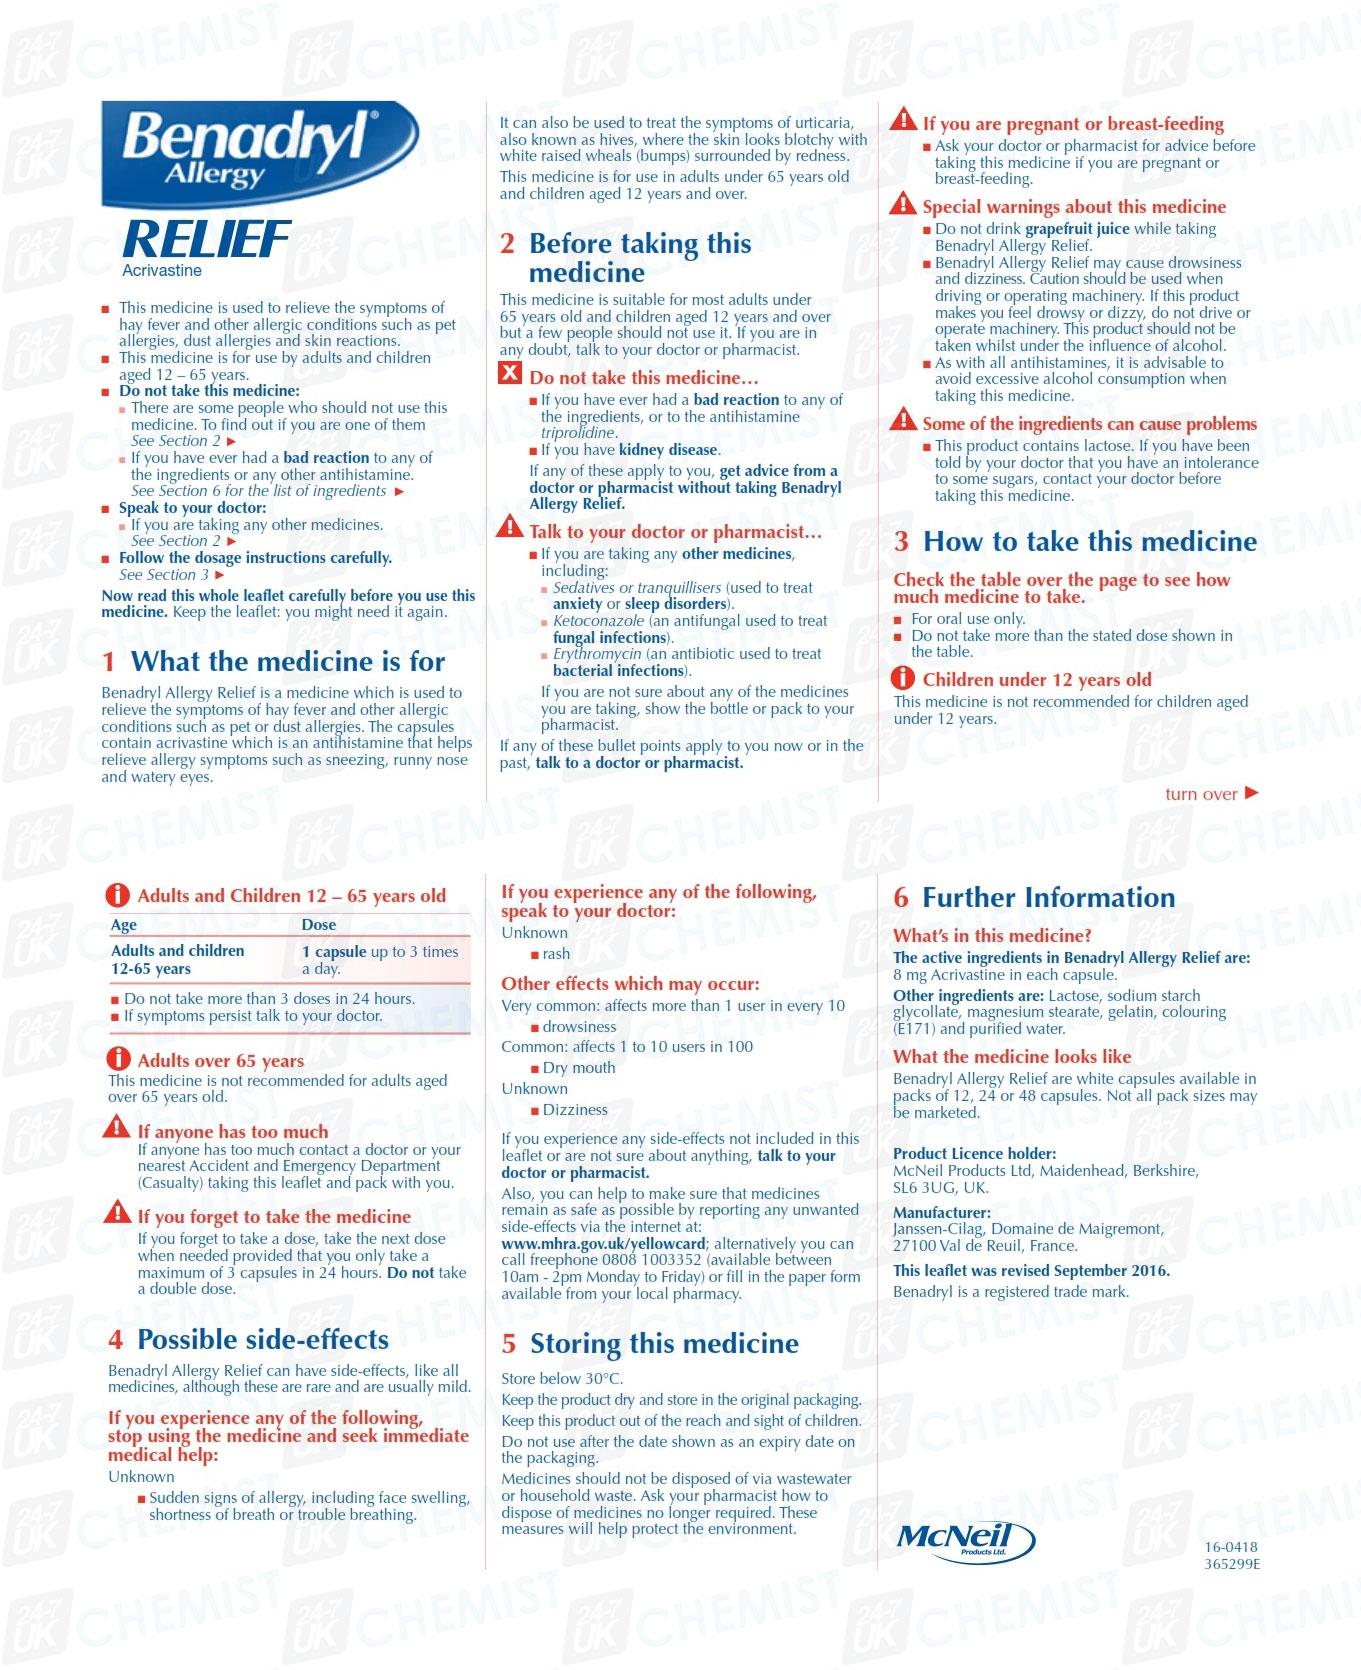 Lovable Patient Information Leaflet Benadryl Allergy Relief